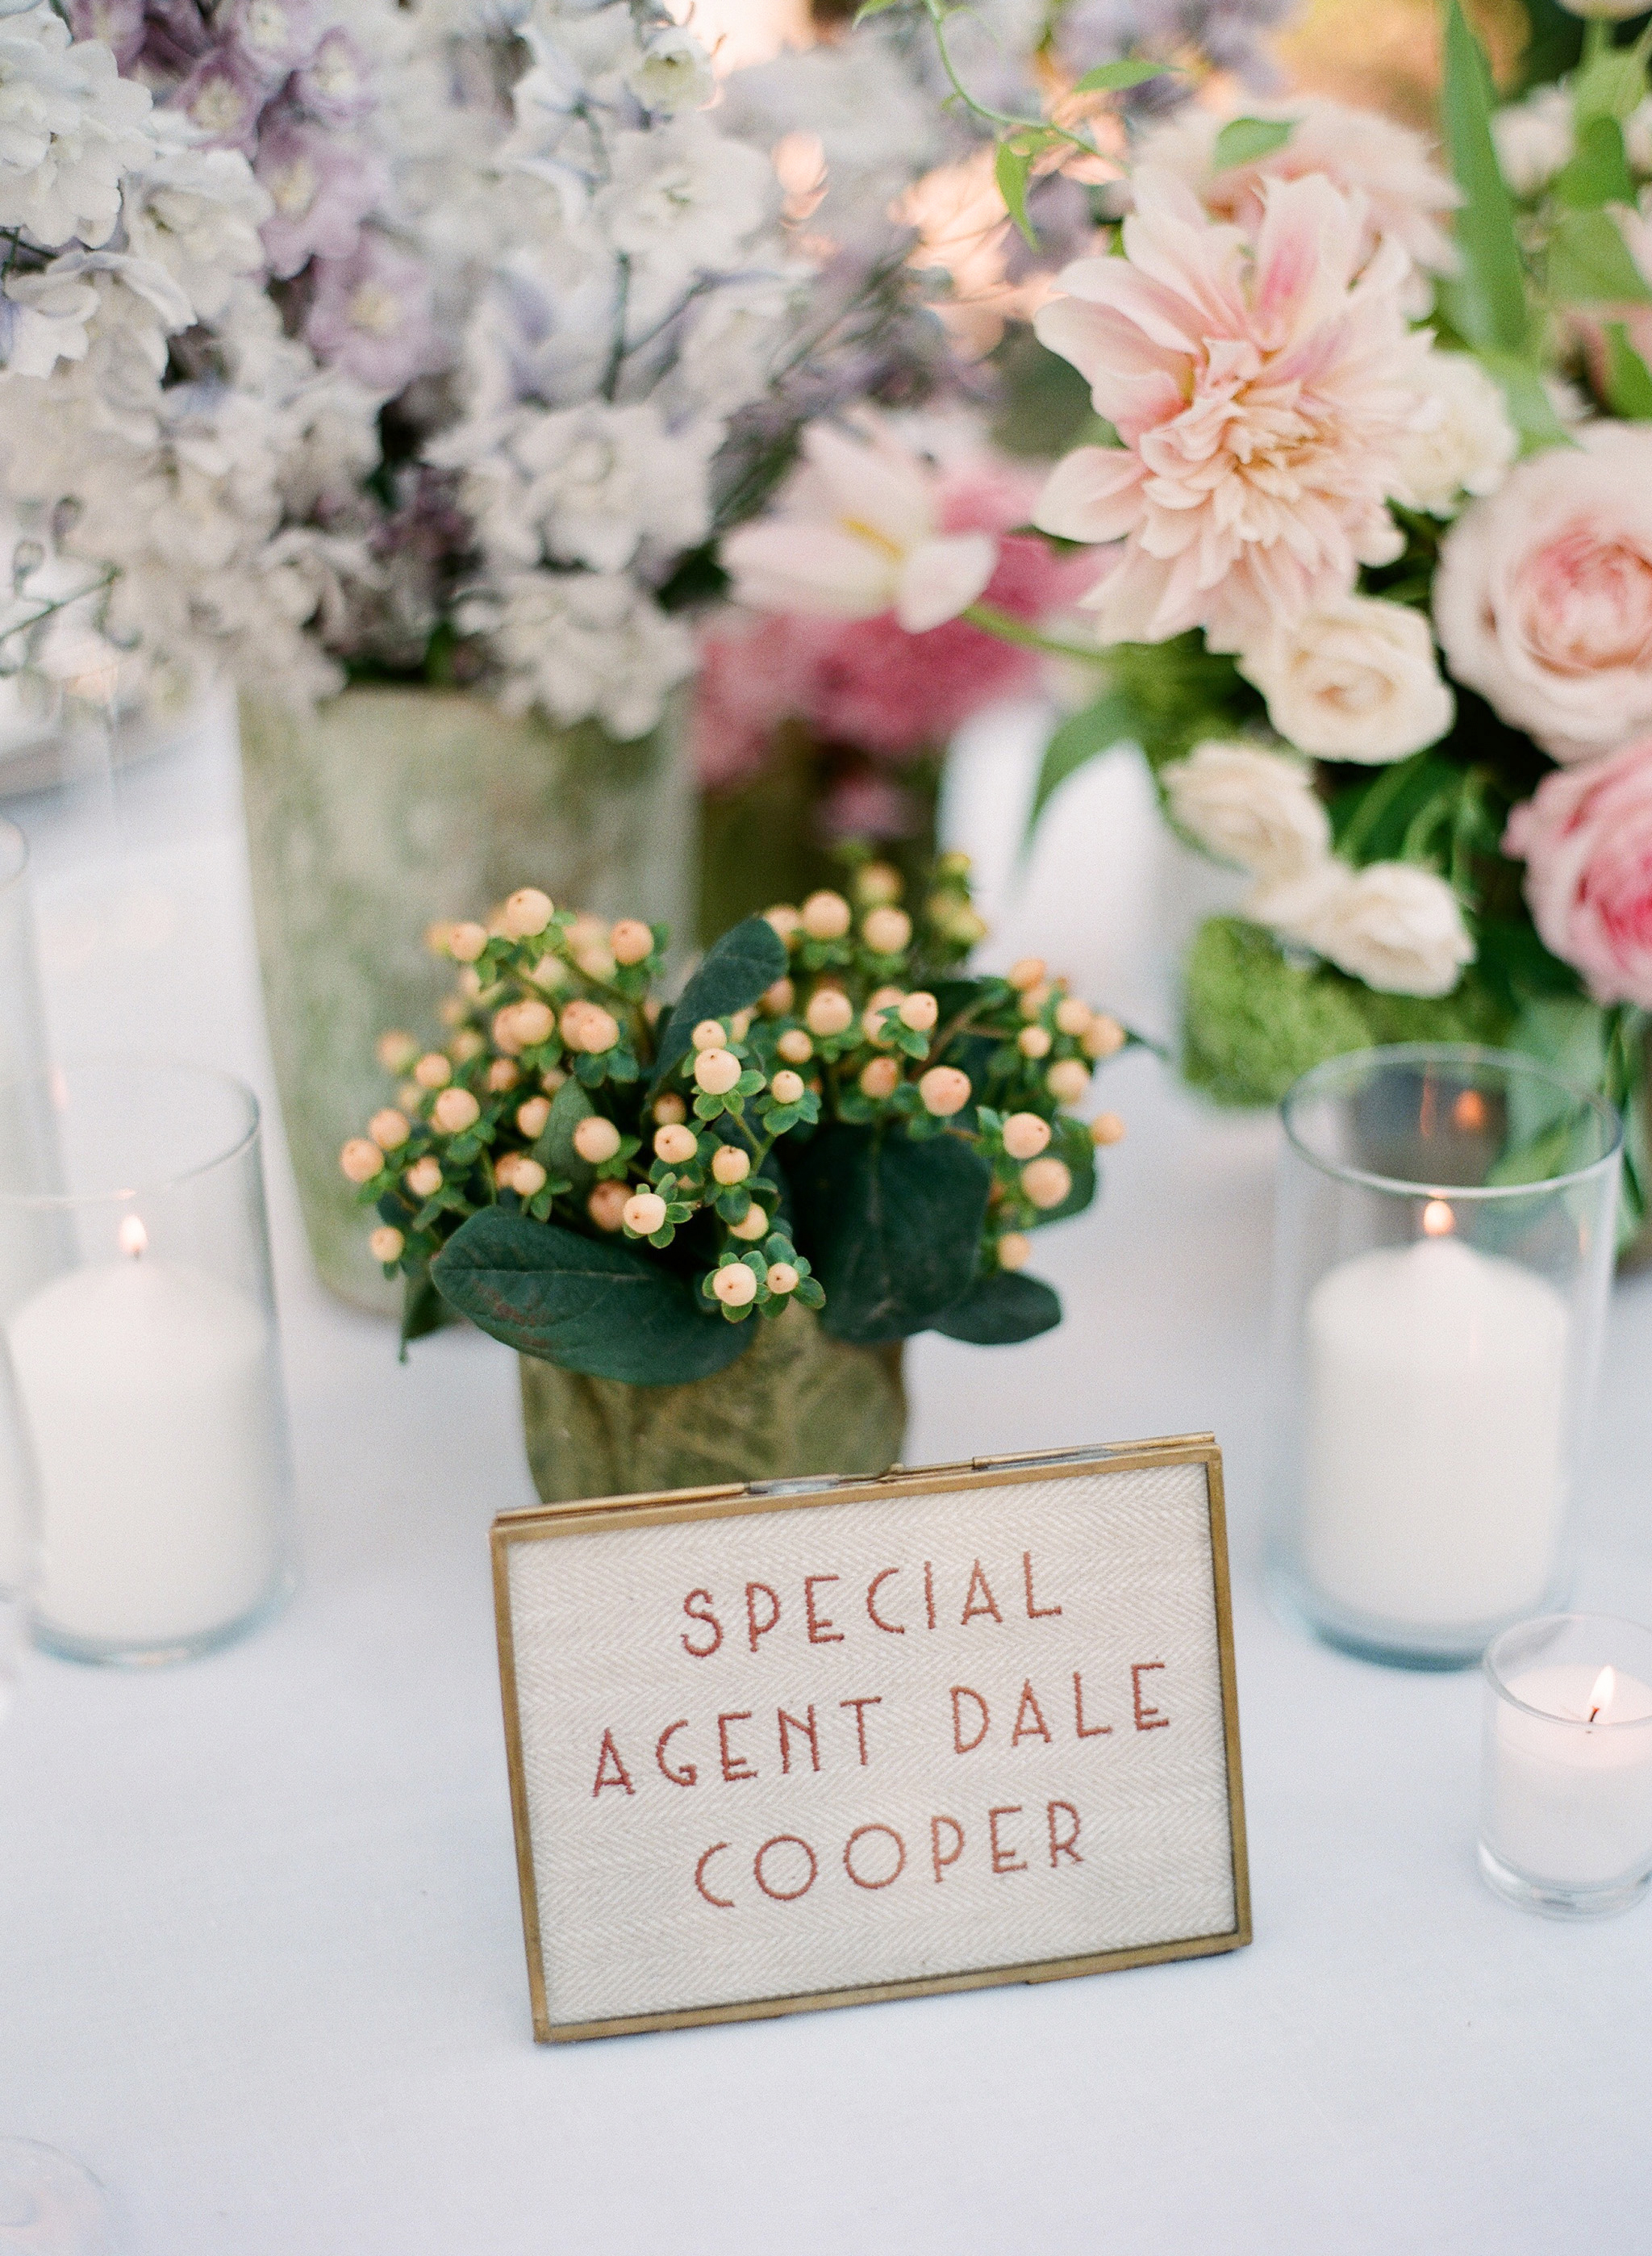 katy michael wedding reception table number character names